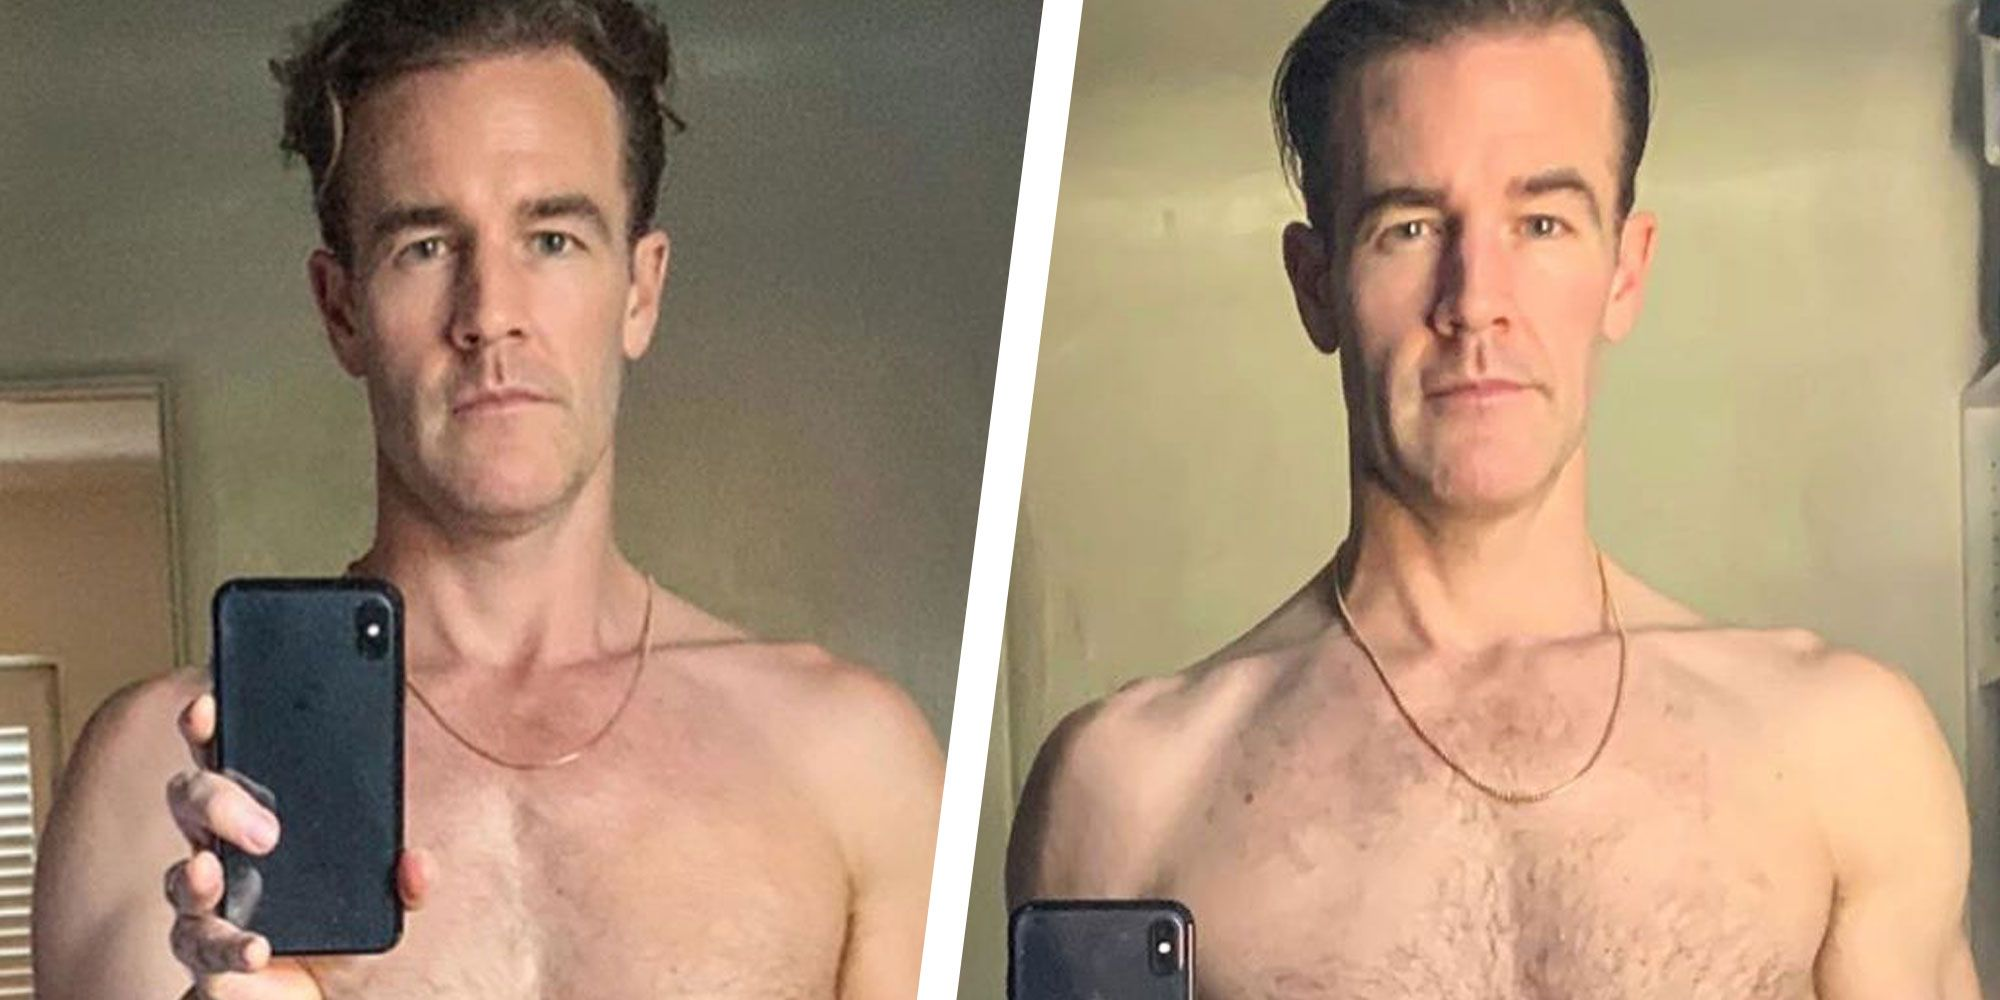 James Van Der Beek Is Even More Ripped Thanks to 'Dancing with the Stars'